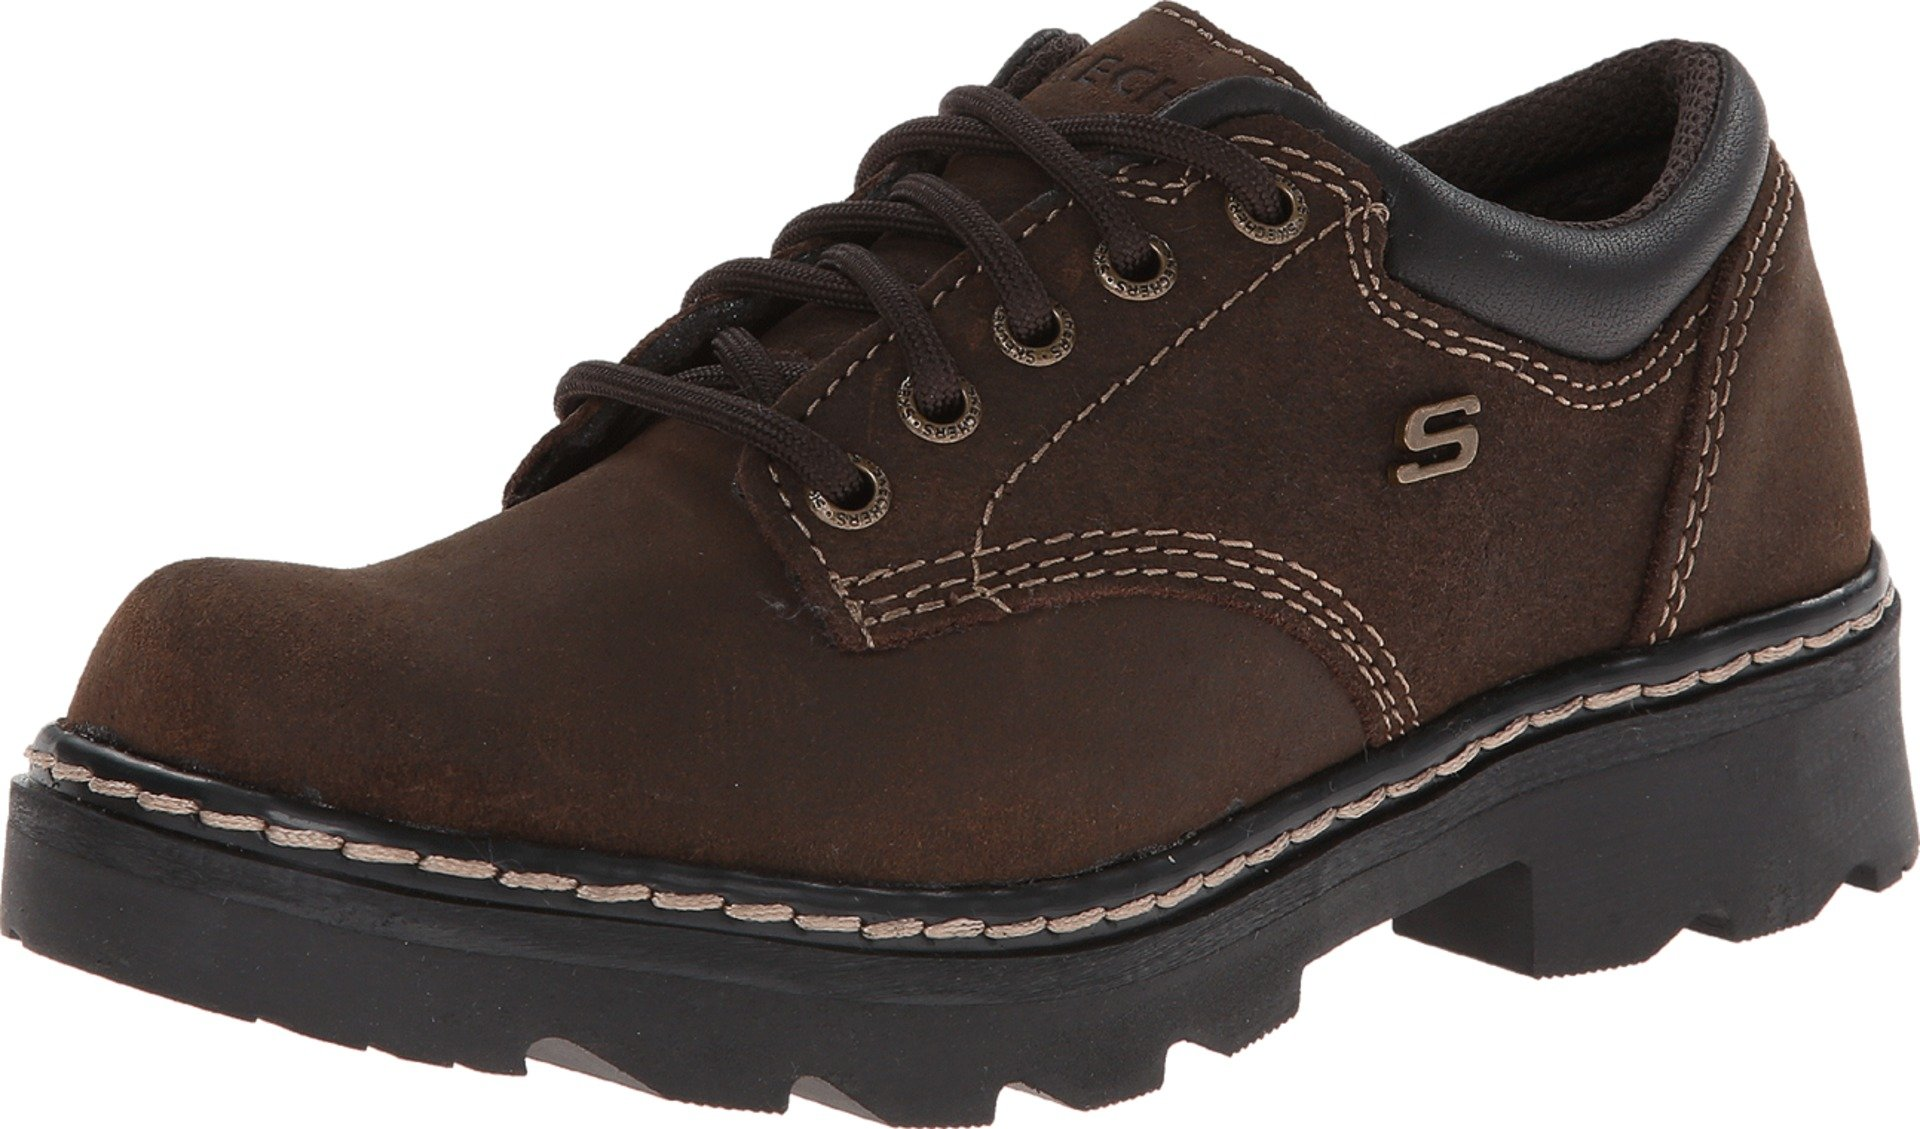 Skechers Women's Parties-Mate Oxford,Chocolate Suede Leather,9.5 M US